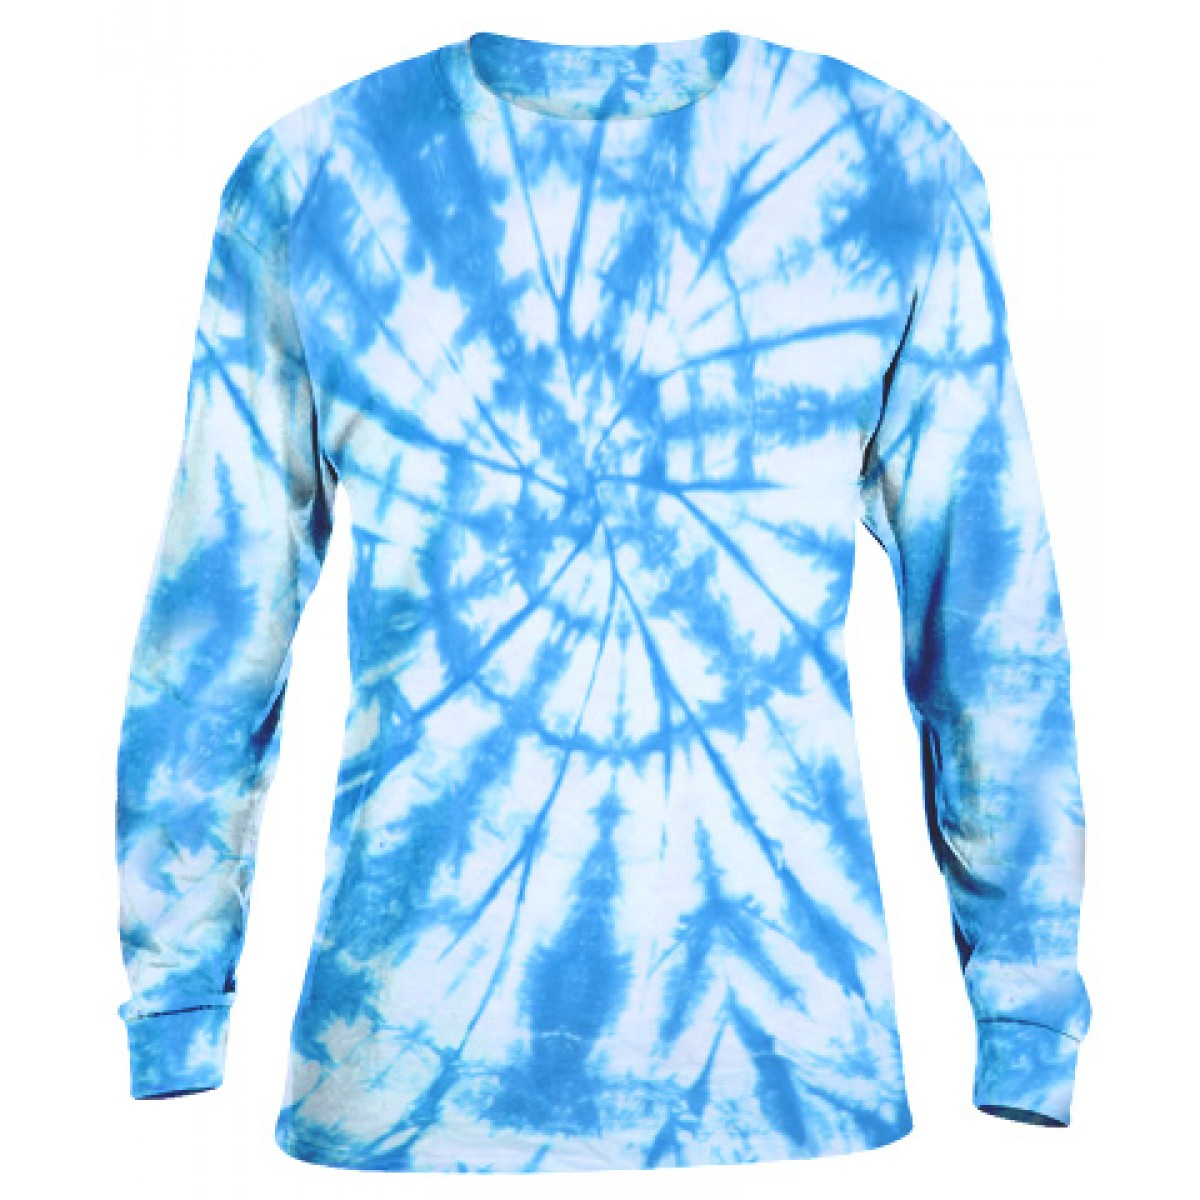 Tie-Dye Long Sleeve Shirt -Blue-YL